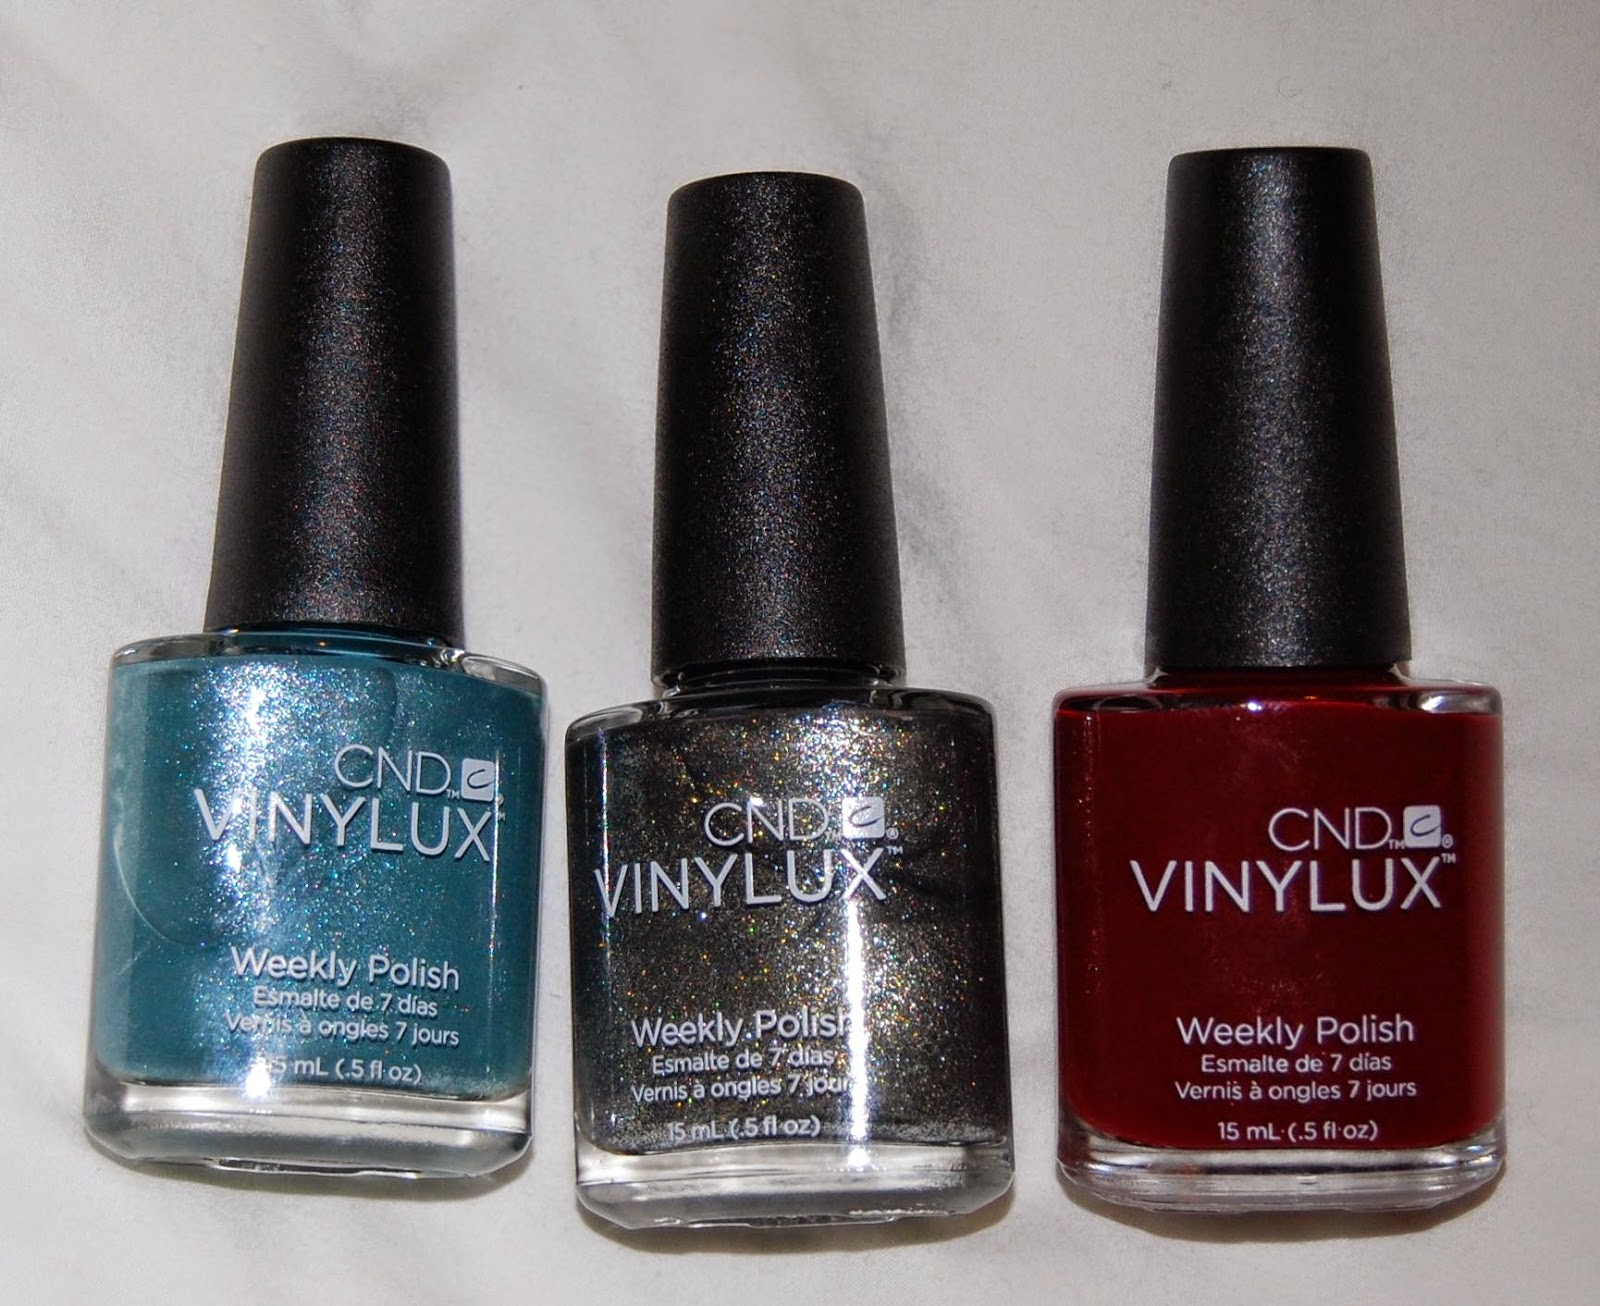 beauty squared: CND Vinylux Weekly Polish in Daring Escape Review, Photos and Swatches